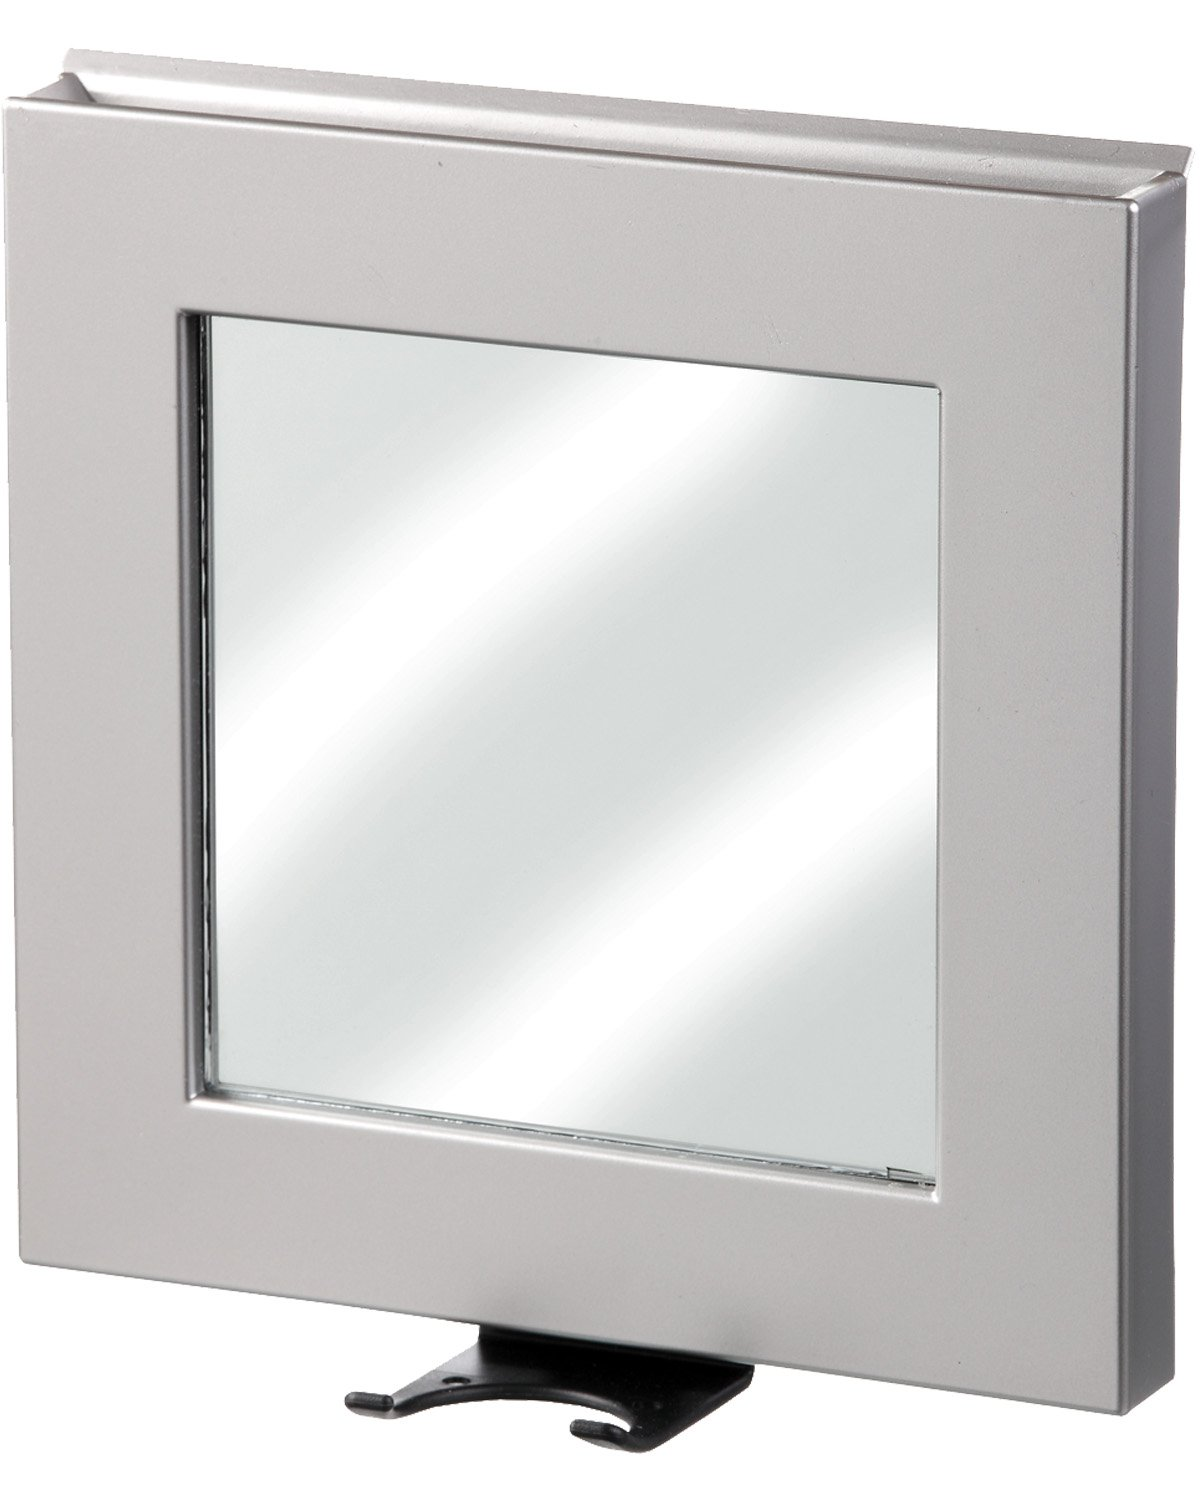 Better Living Products B.Smart Anti-Fog Shower Mirror Inc 13903